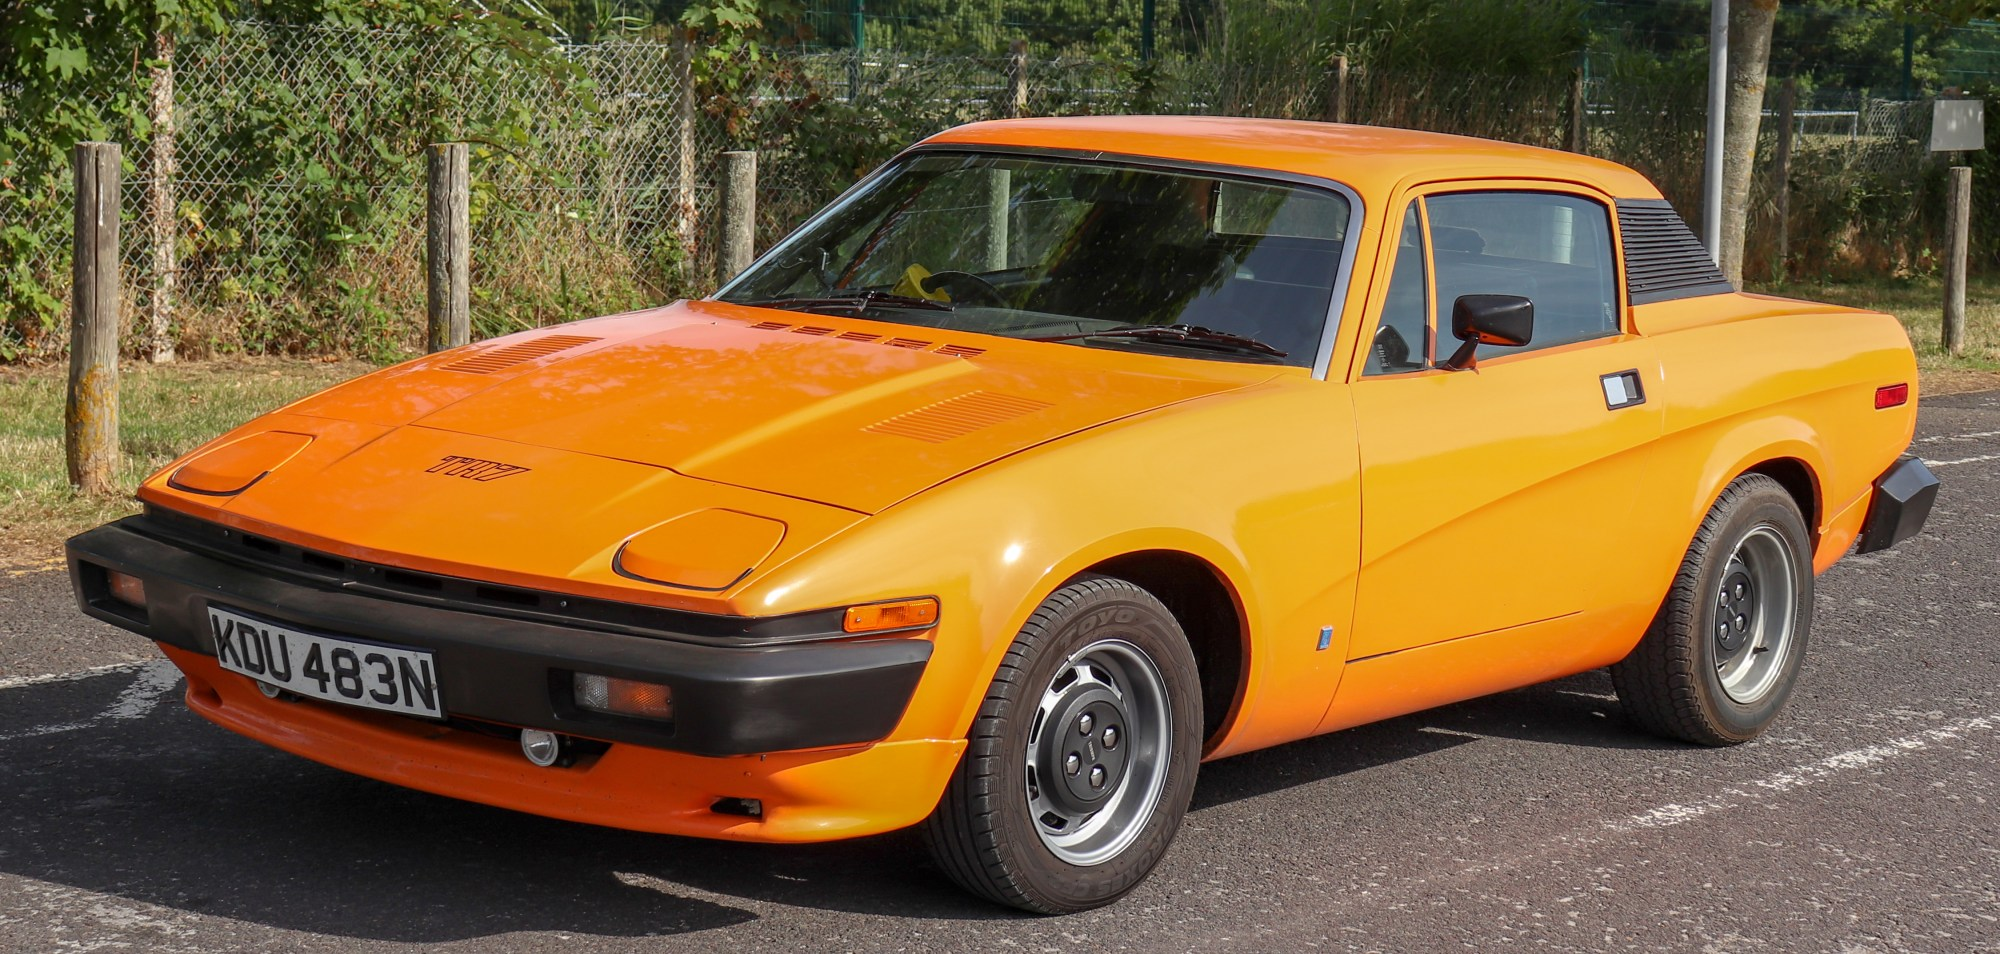 hight resolution of wiring diagram for triumph tr7 1976 wiring diagram datasource triumph tr7 wikipedia wiring diagram for triumph